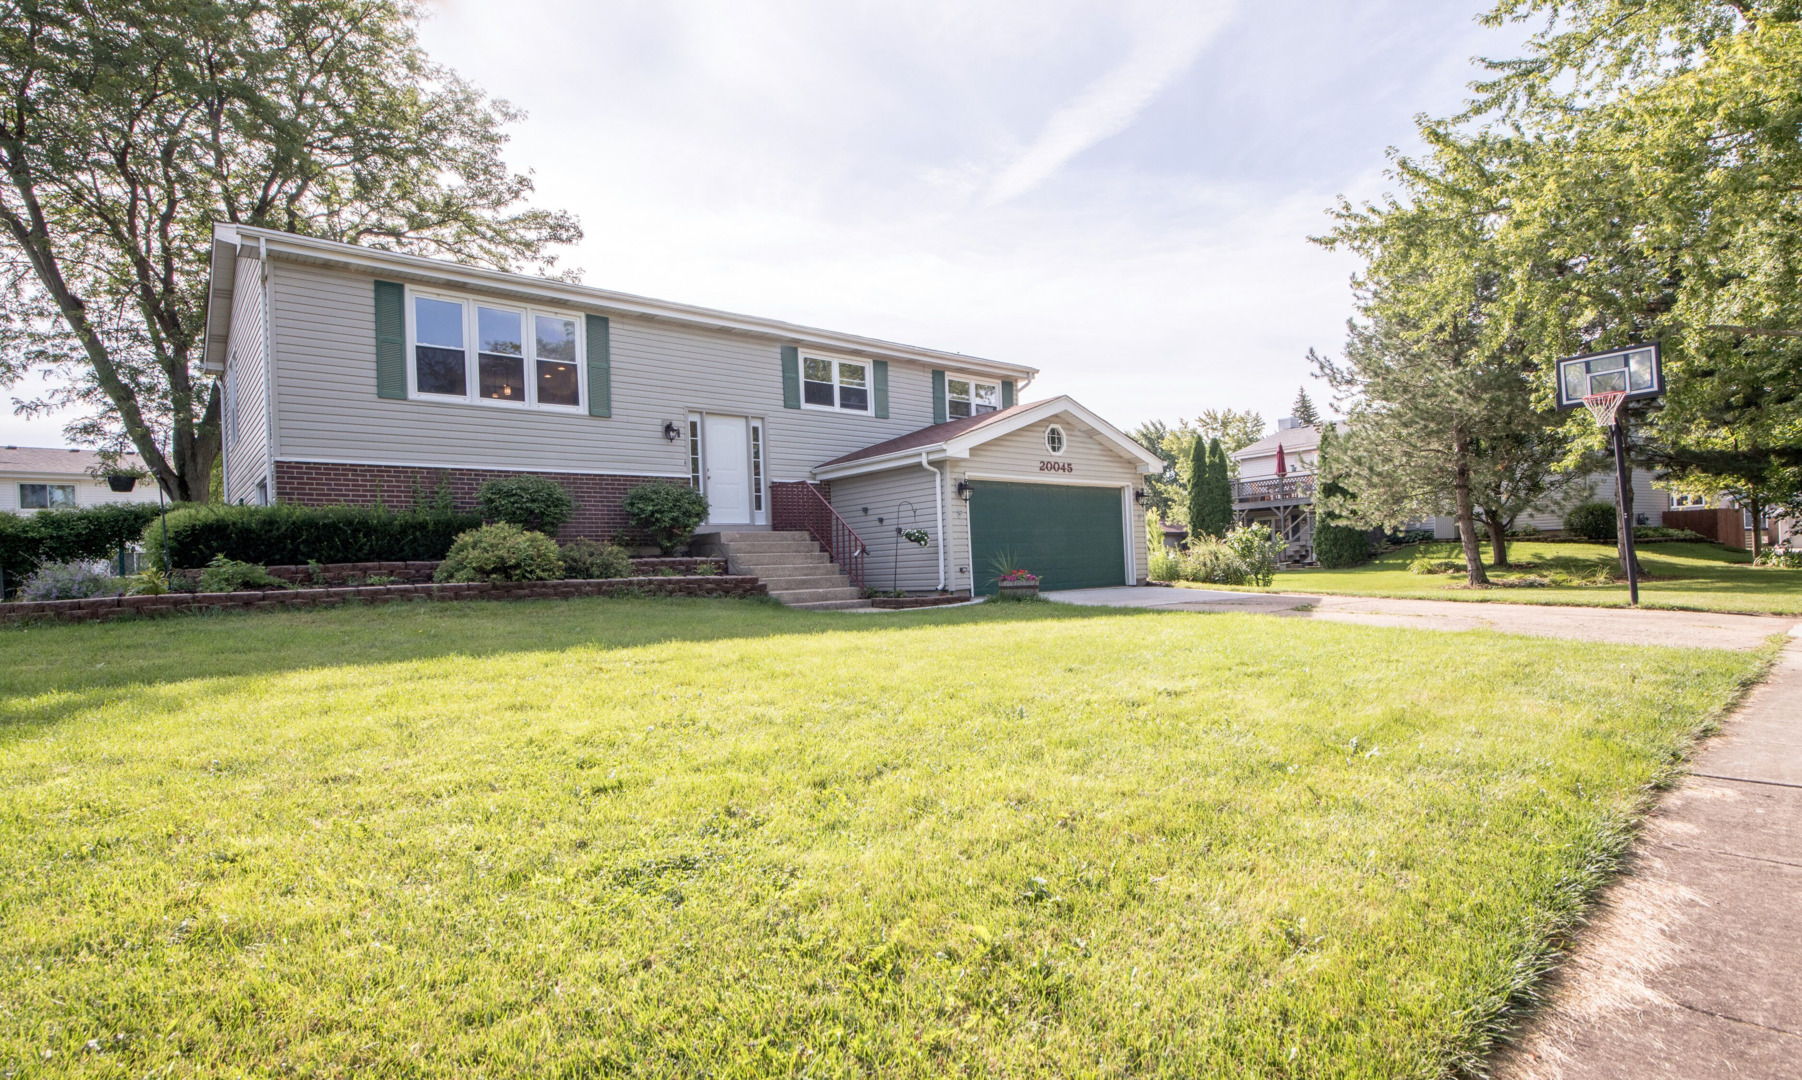 20045 South Sycamore, Frankfort, Illinois, 60423